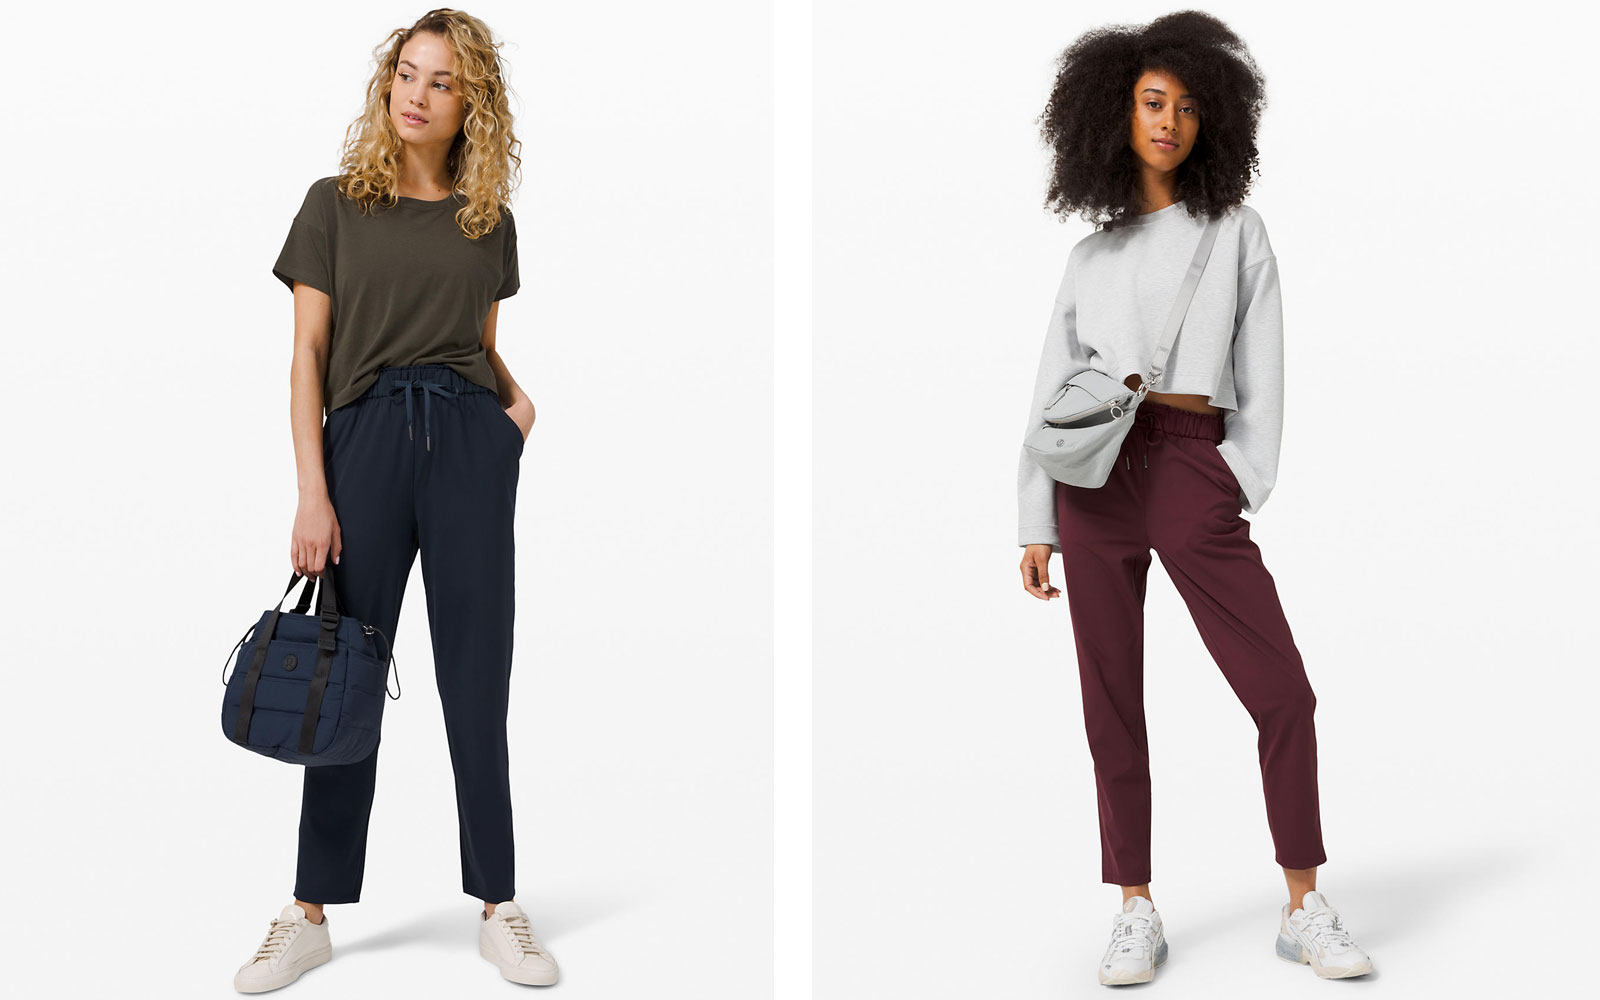 Women wearing navy and dark red jogger pants